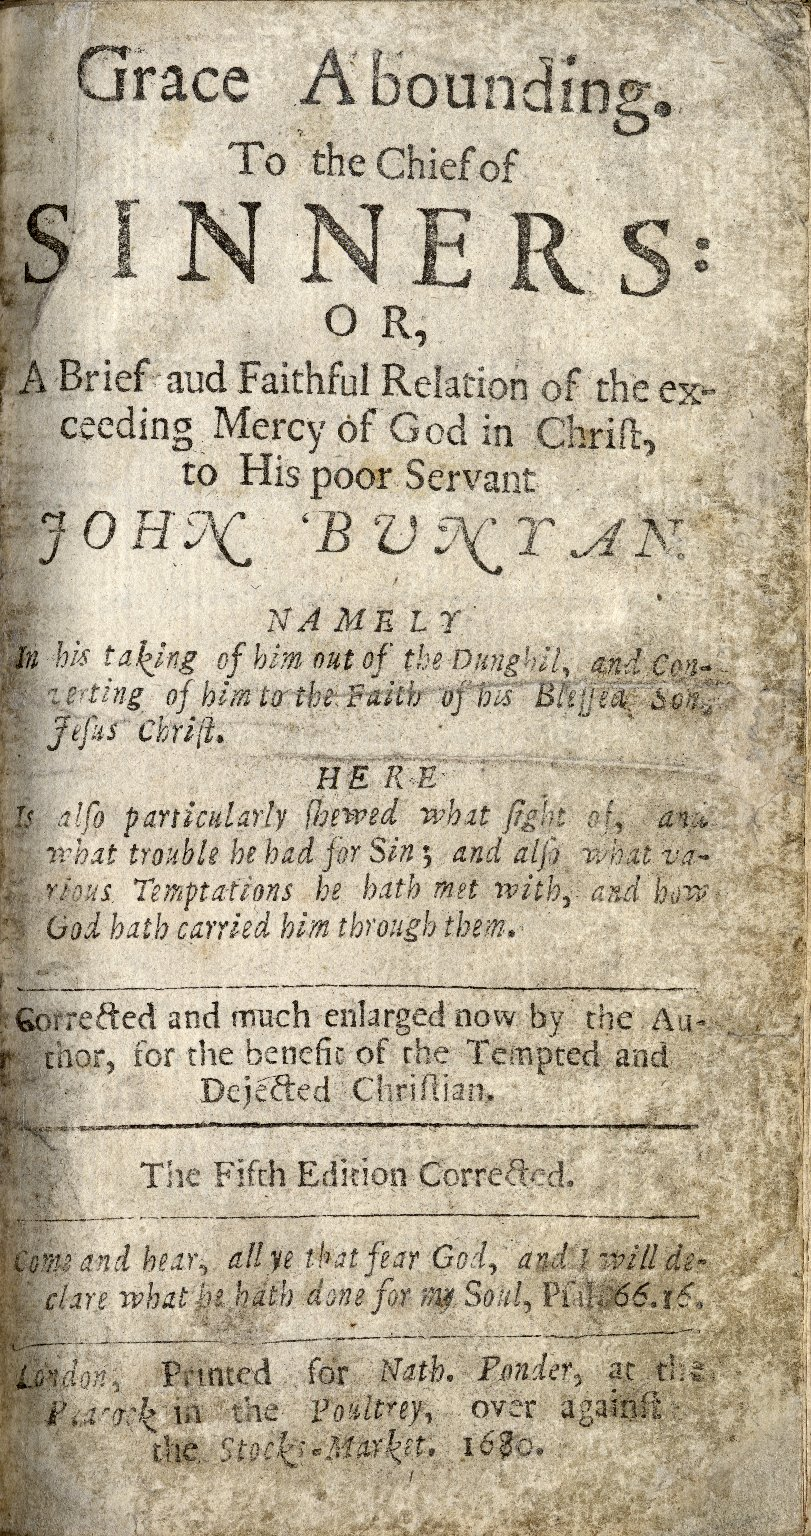 Grace abounding. To the chief of sinners: or, A brief aud [sic] faithful relation of the exceeding mercy of God in Christ, to His poor servant John Bunyan.